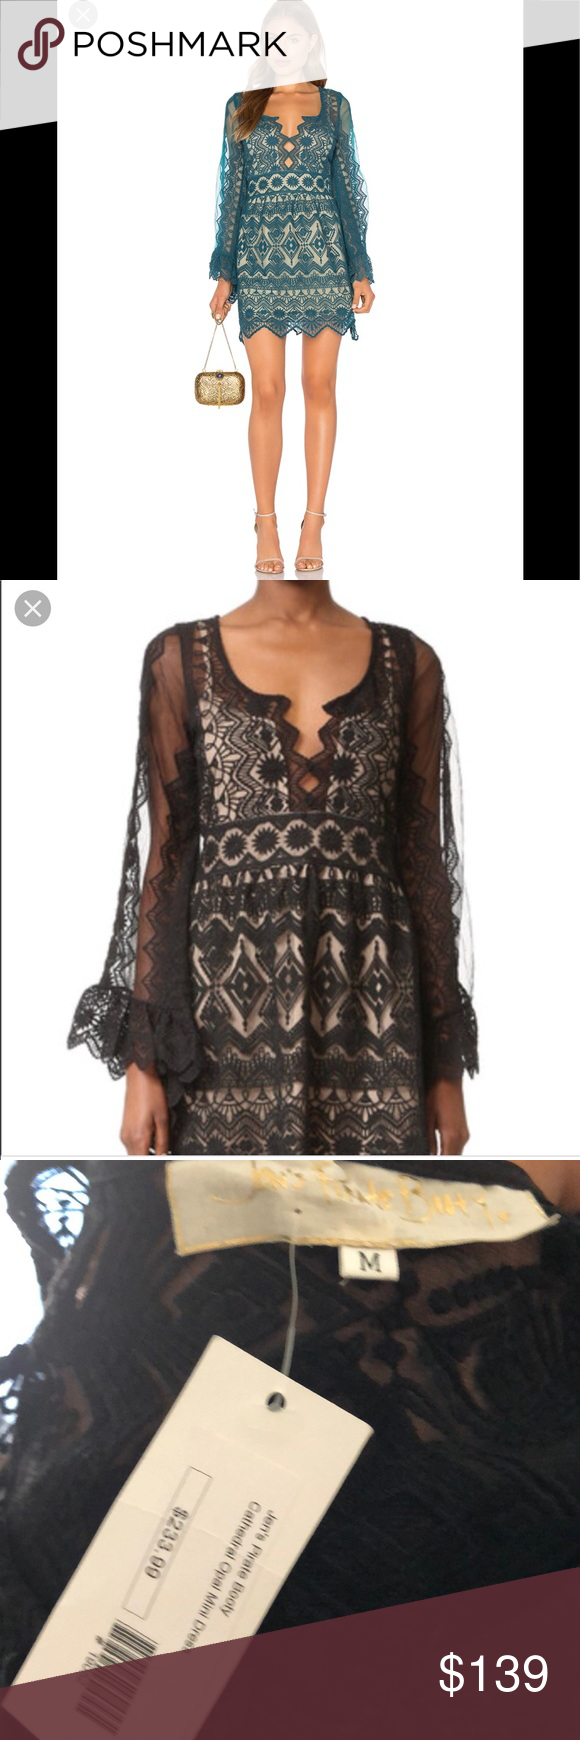 M boutique lace dress  NWT JENS PIRATE BOOTY CATHEDRAL OPAL MINI DRESSM Boutique  My Posh